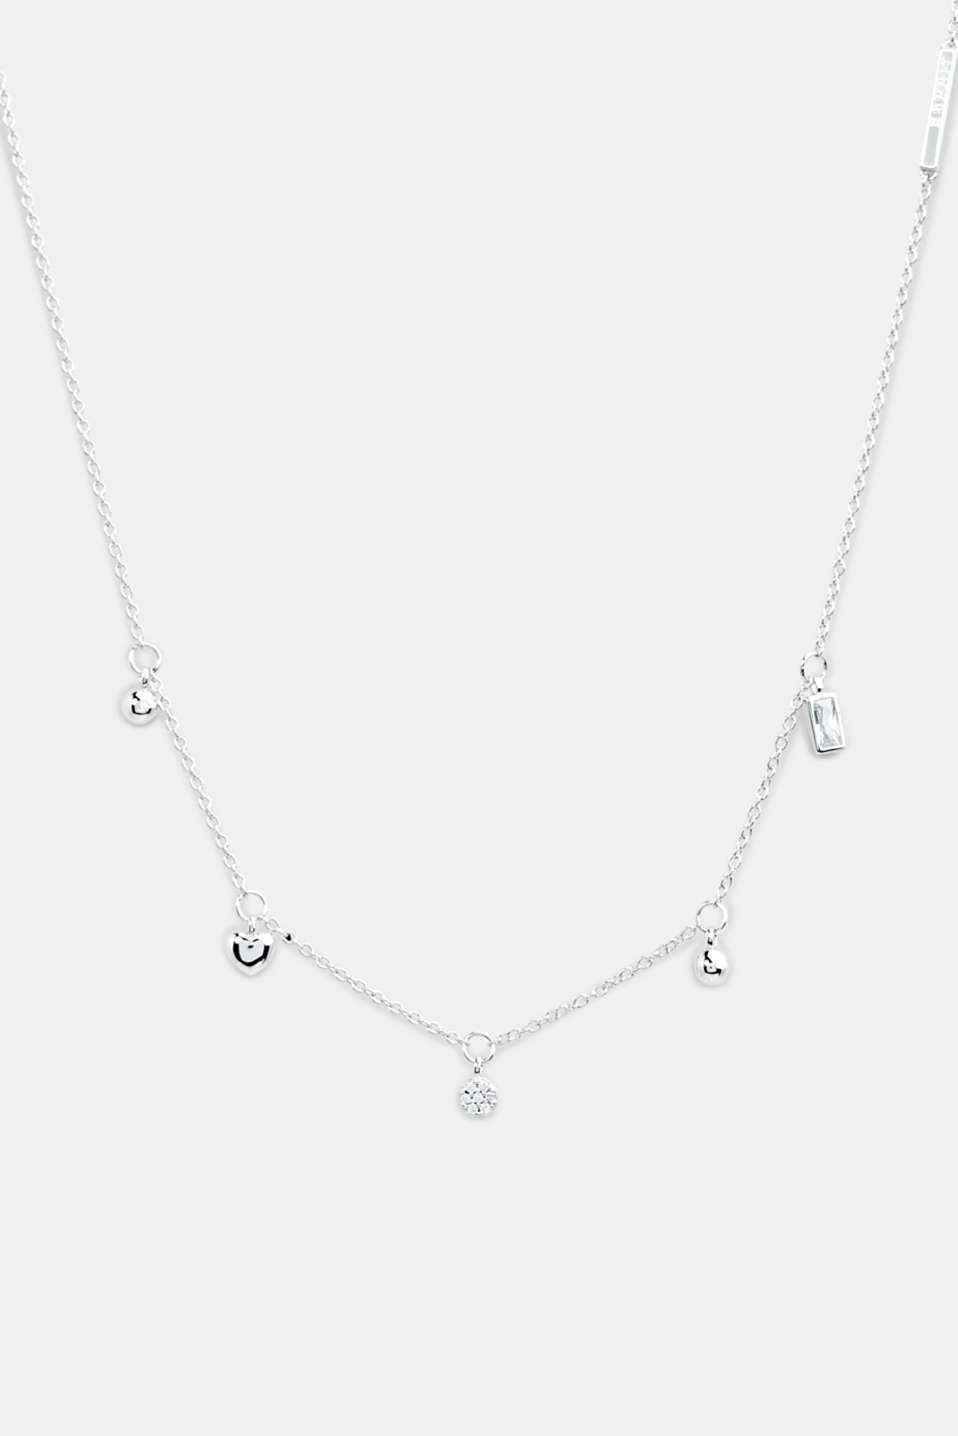 Necklace with charms, sterling silver, LCSILVER, detail image number 0